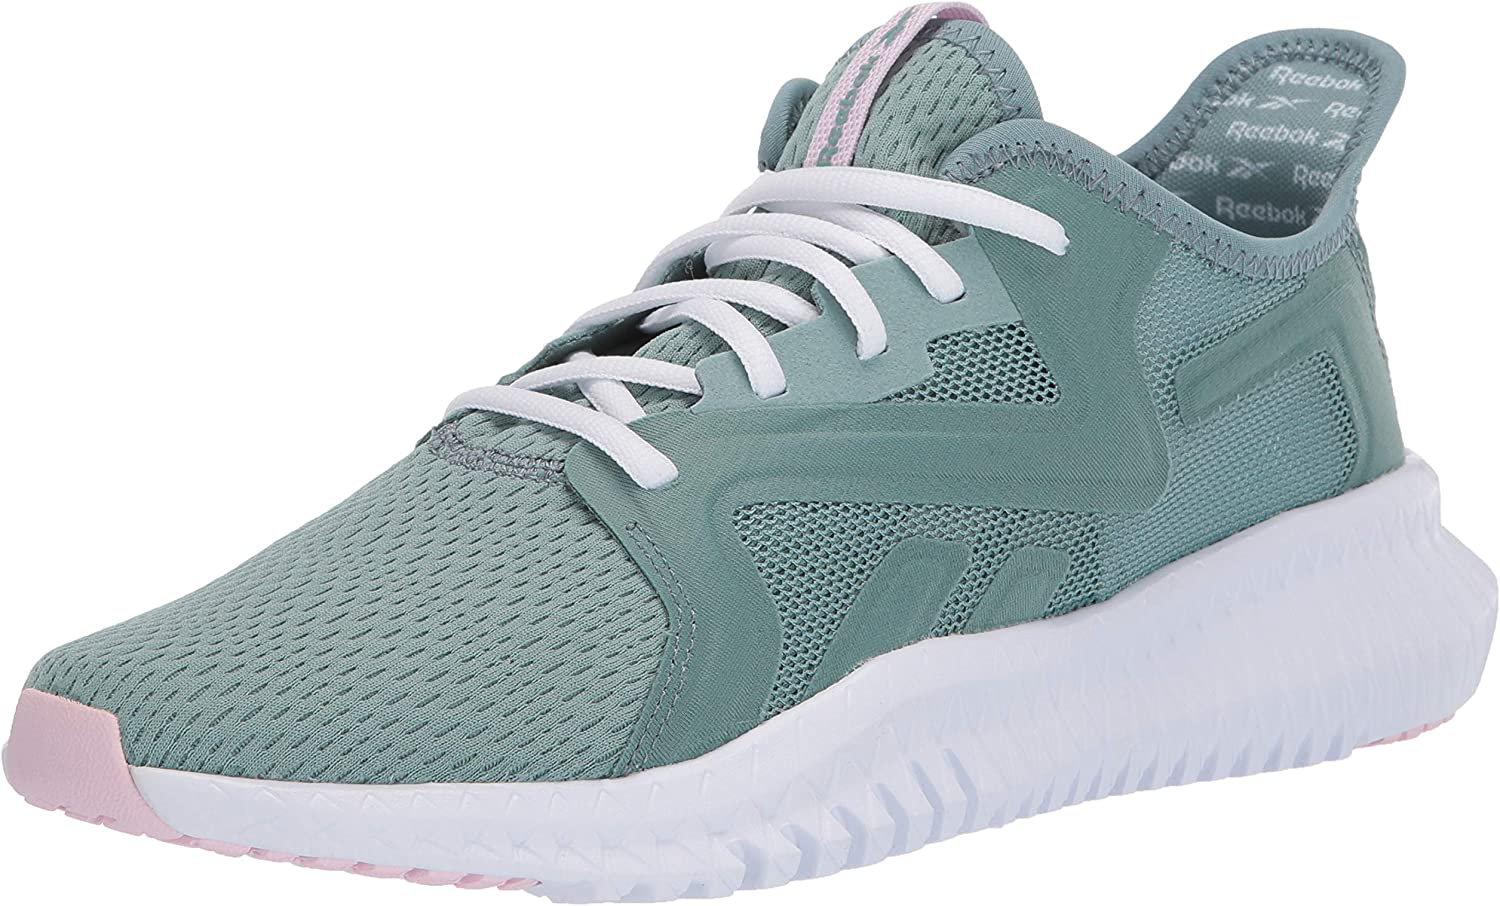 Reebok Women's Flexagon 3.0 Cross Trainer